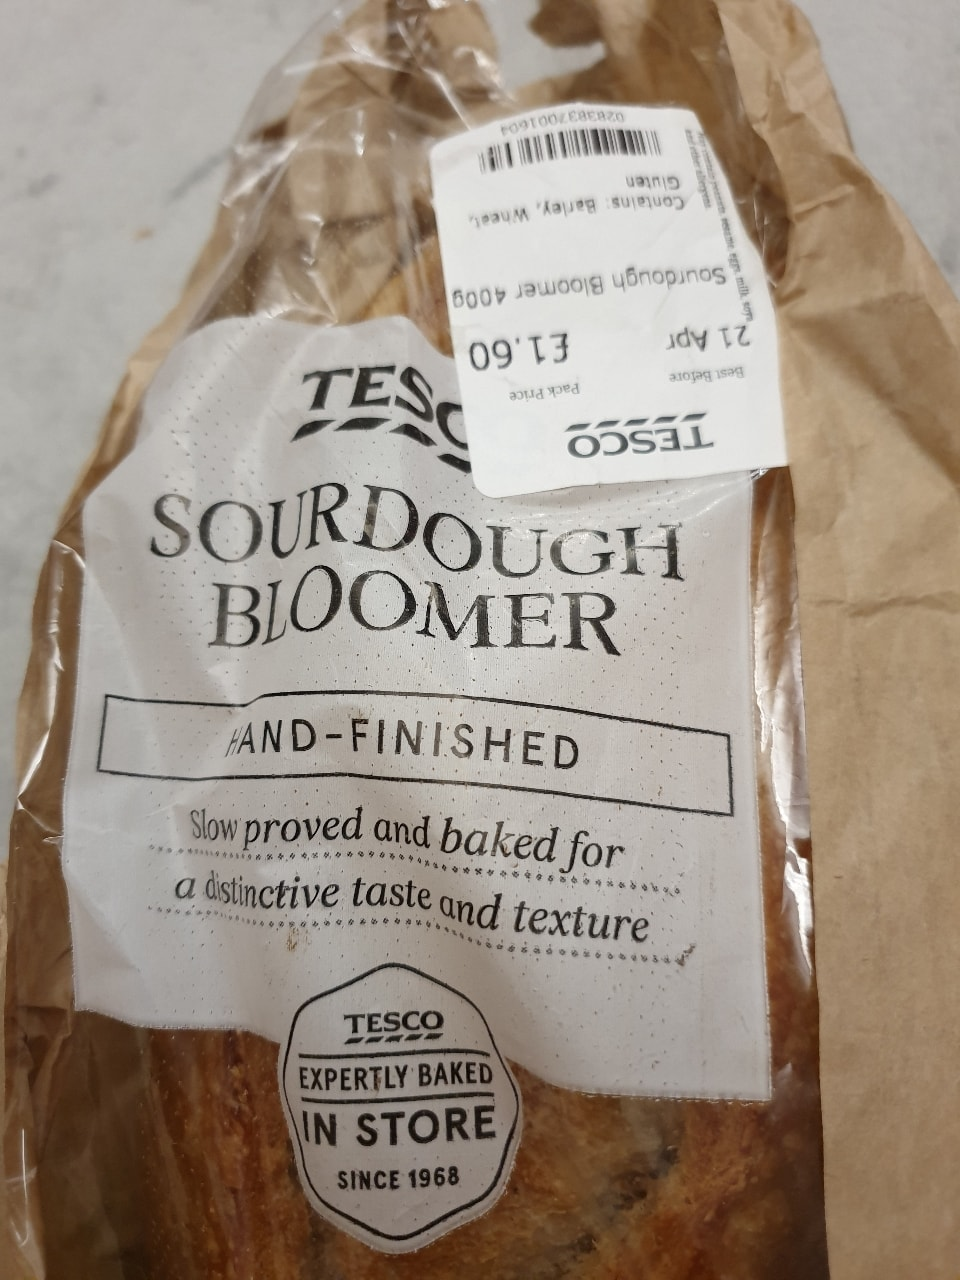 Sour dough bloomer  21 april Donated by Tesco